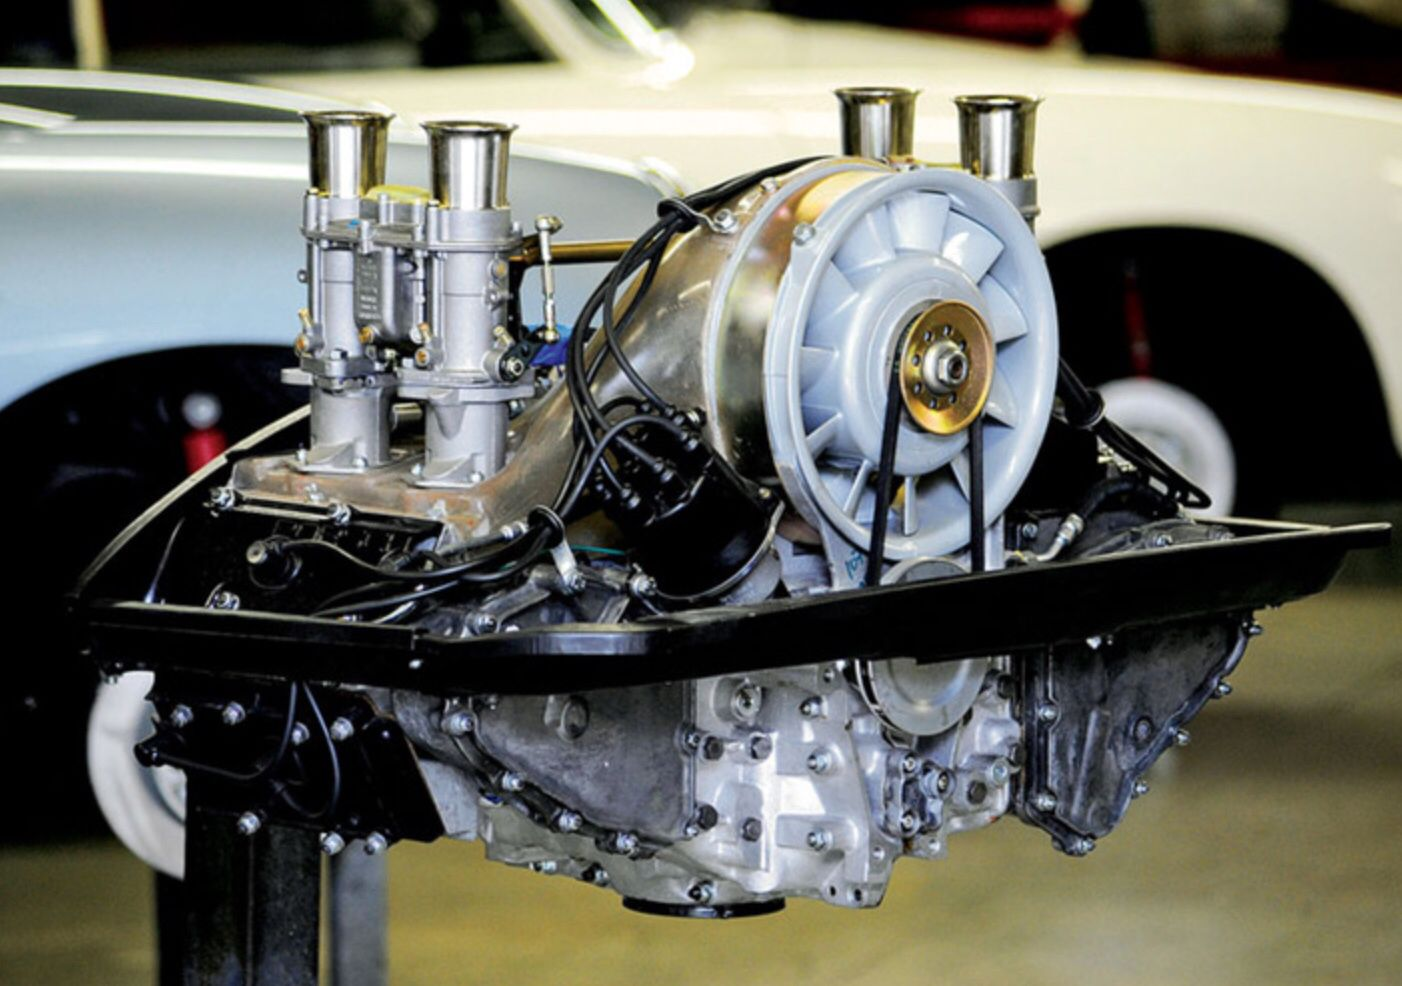 The POLO motor. DOHC, Air cooled, twinplug Flat four. The